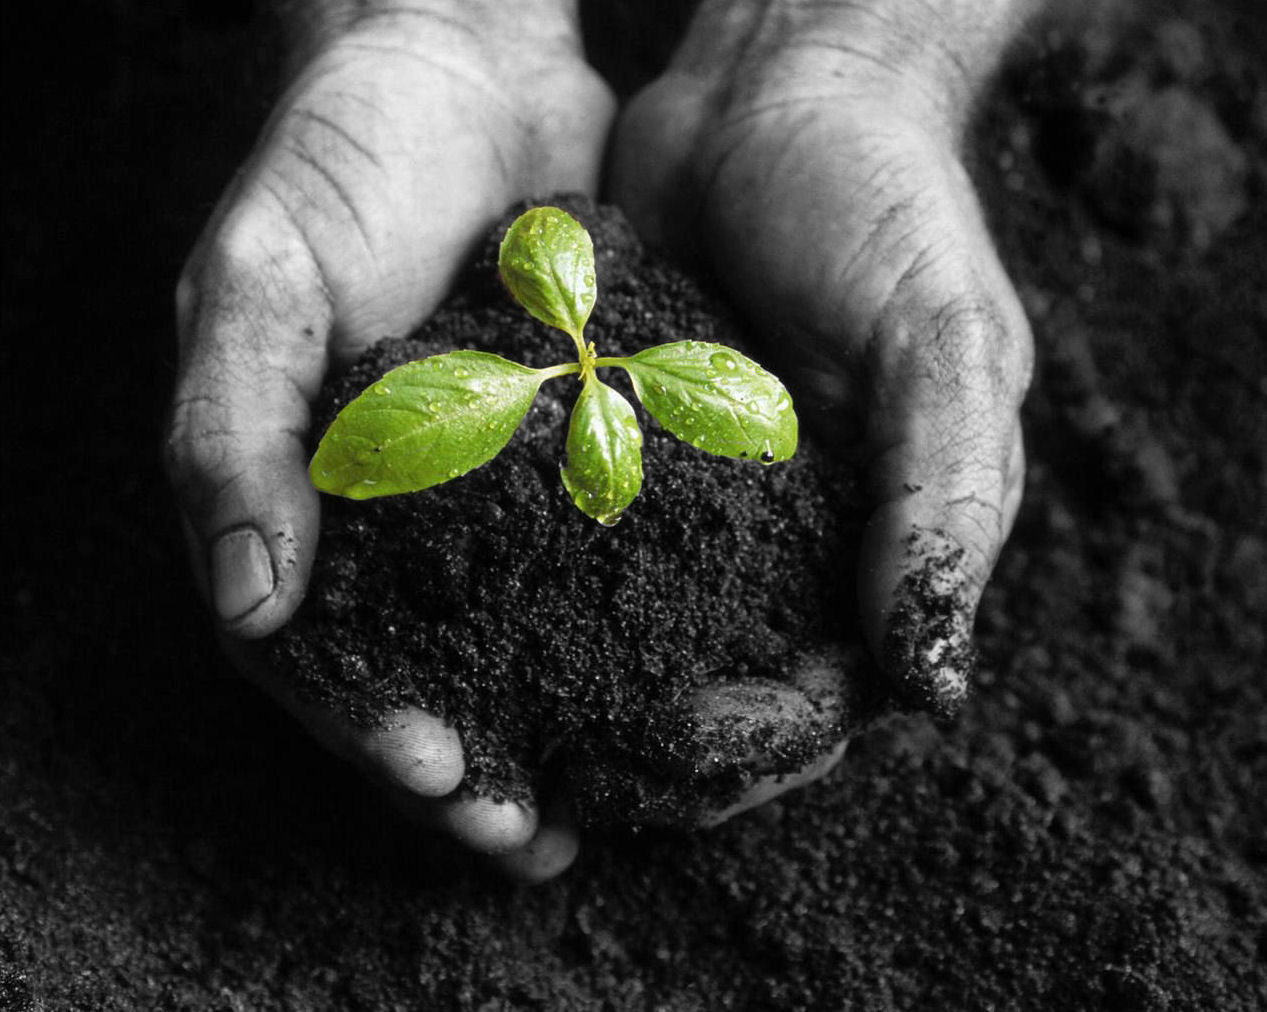 Time to Plant Those Seeds by Laurie Kolp